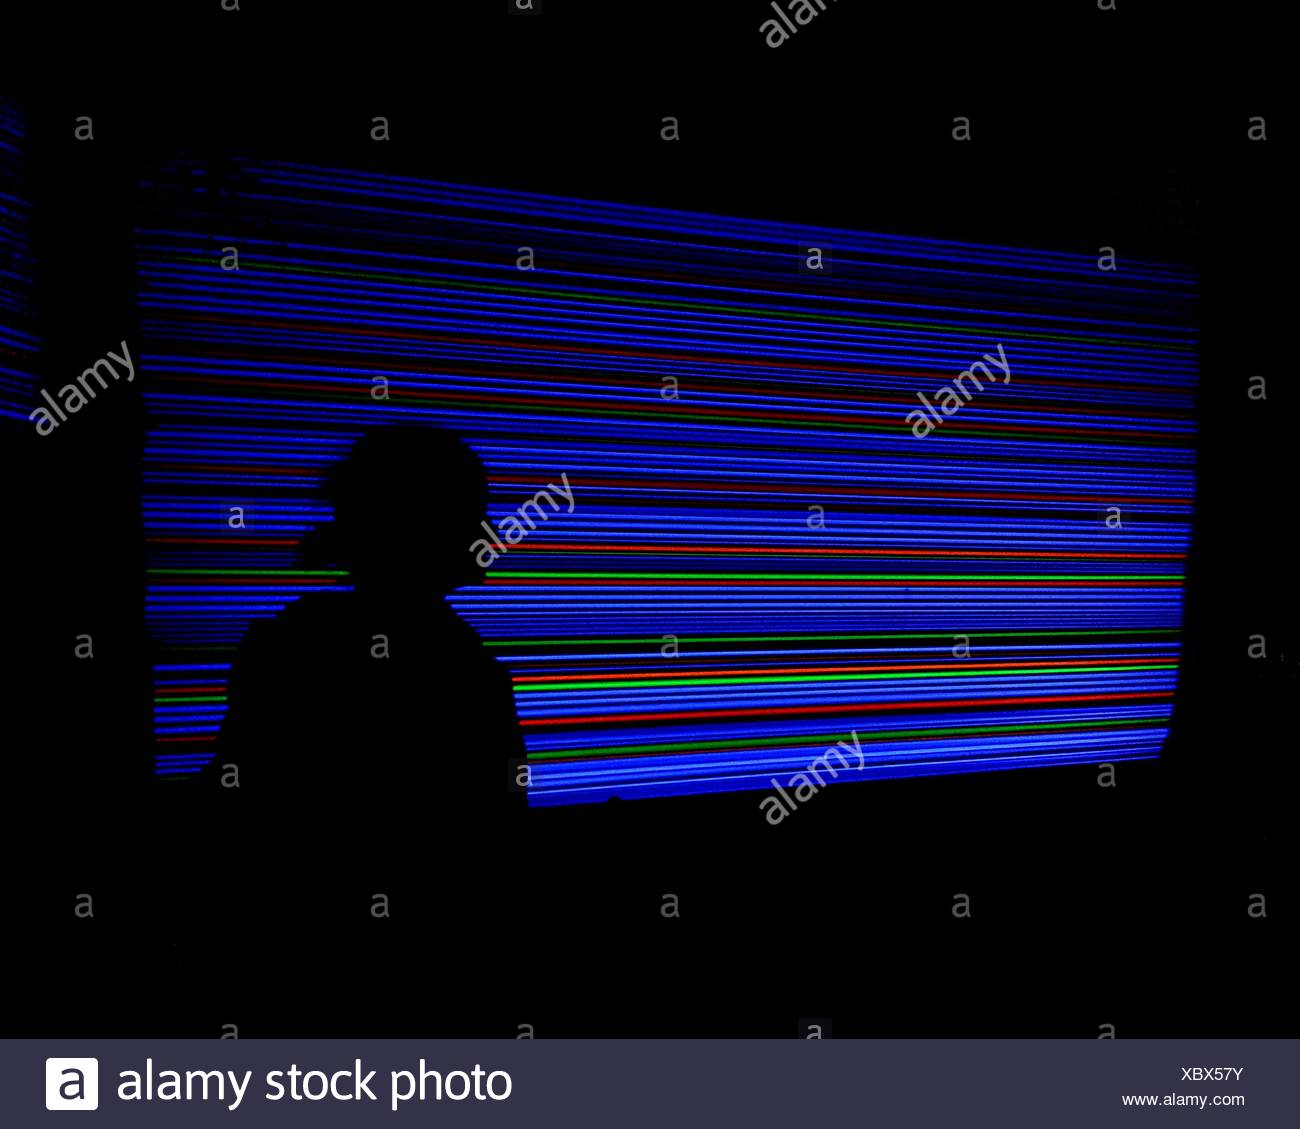 Silhouette Man Against Illuminated Colorful Neon Lights - Stock Image